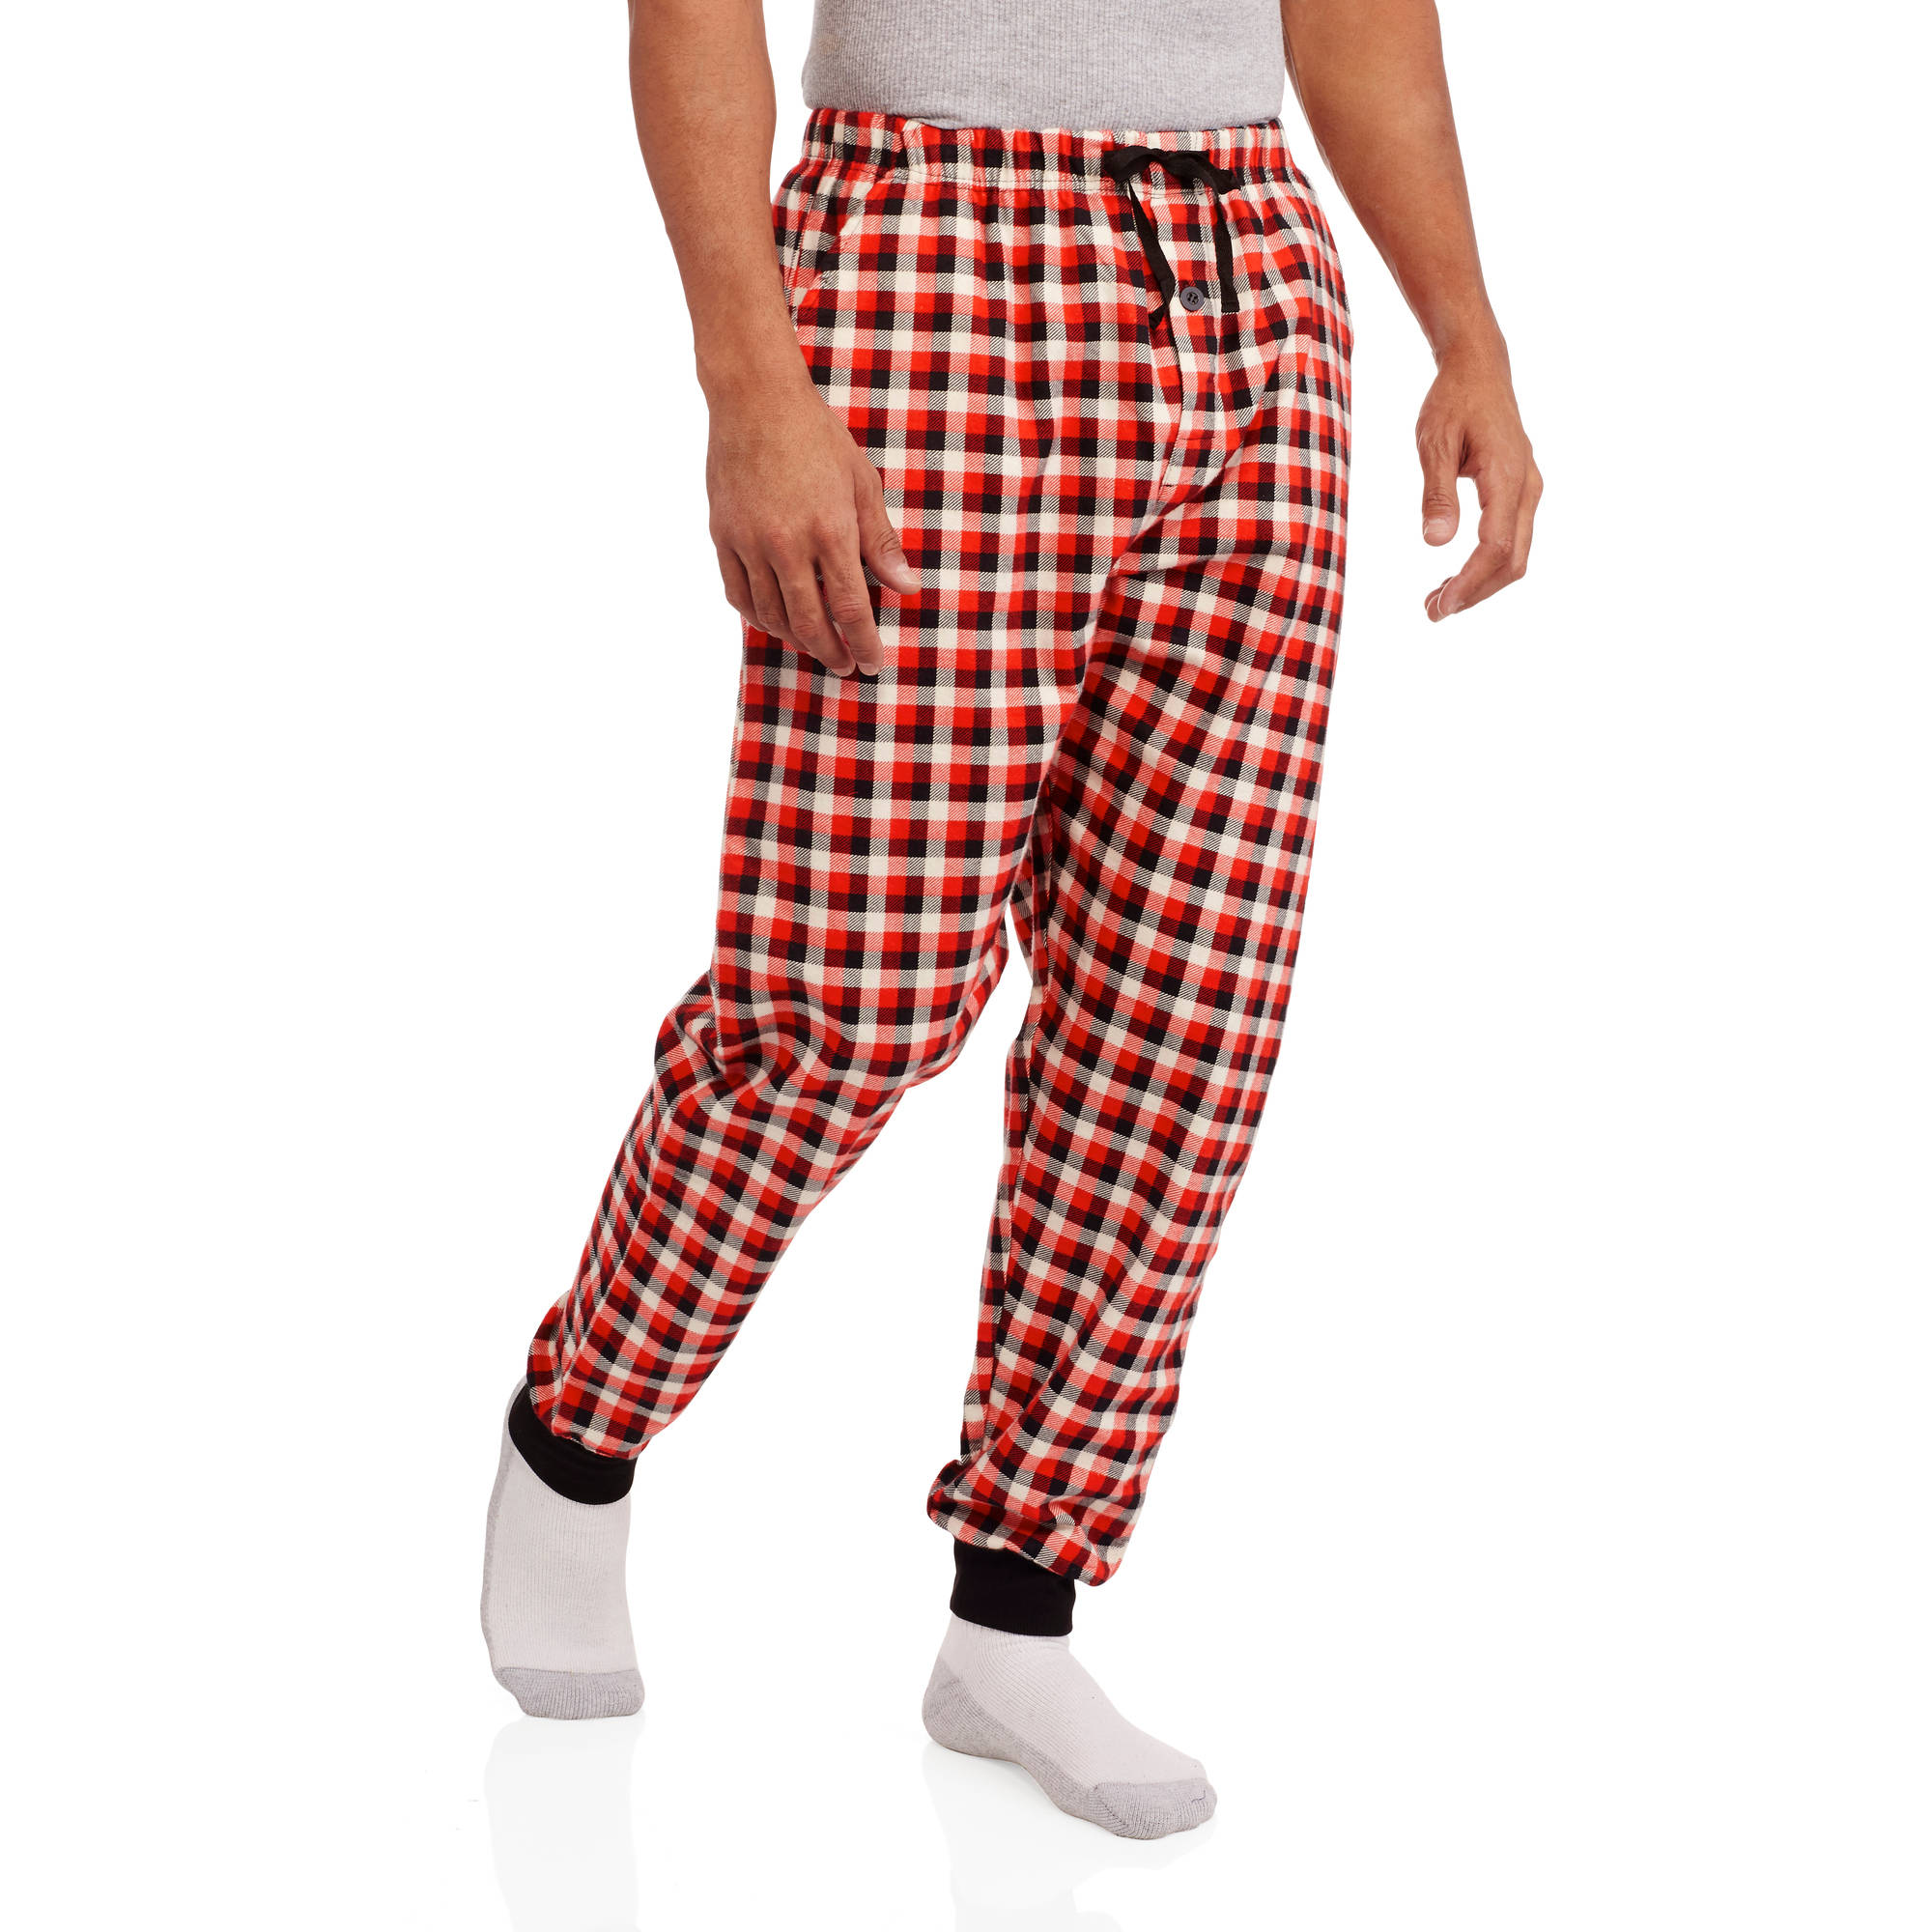 Sleep Pants